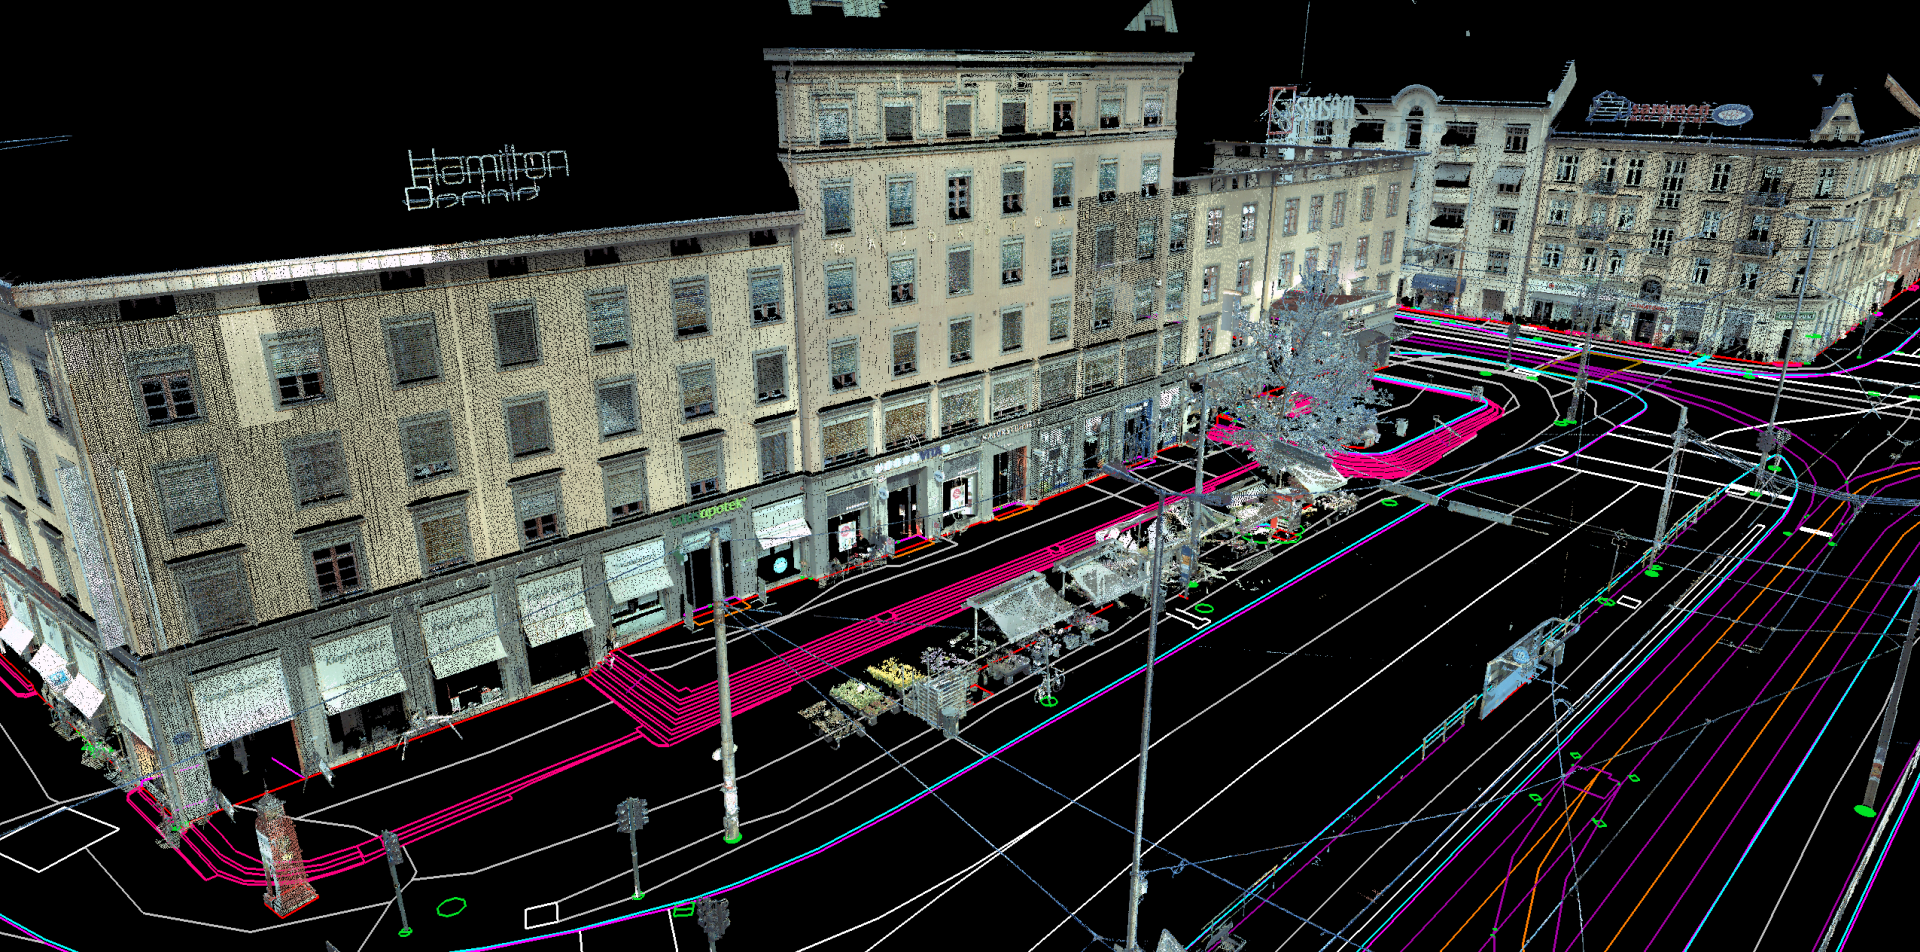 A Laser scan and 3D model of Majorstuen in Oslo